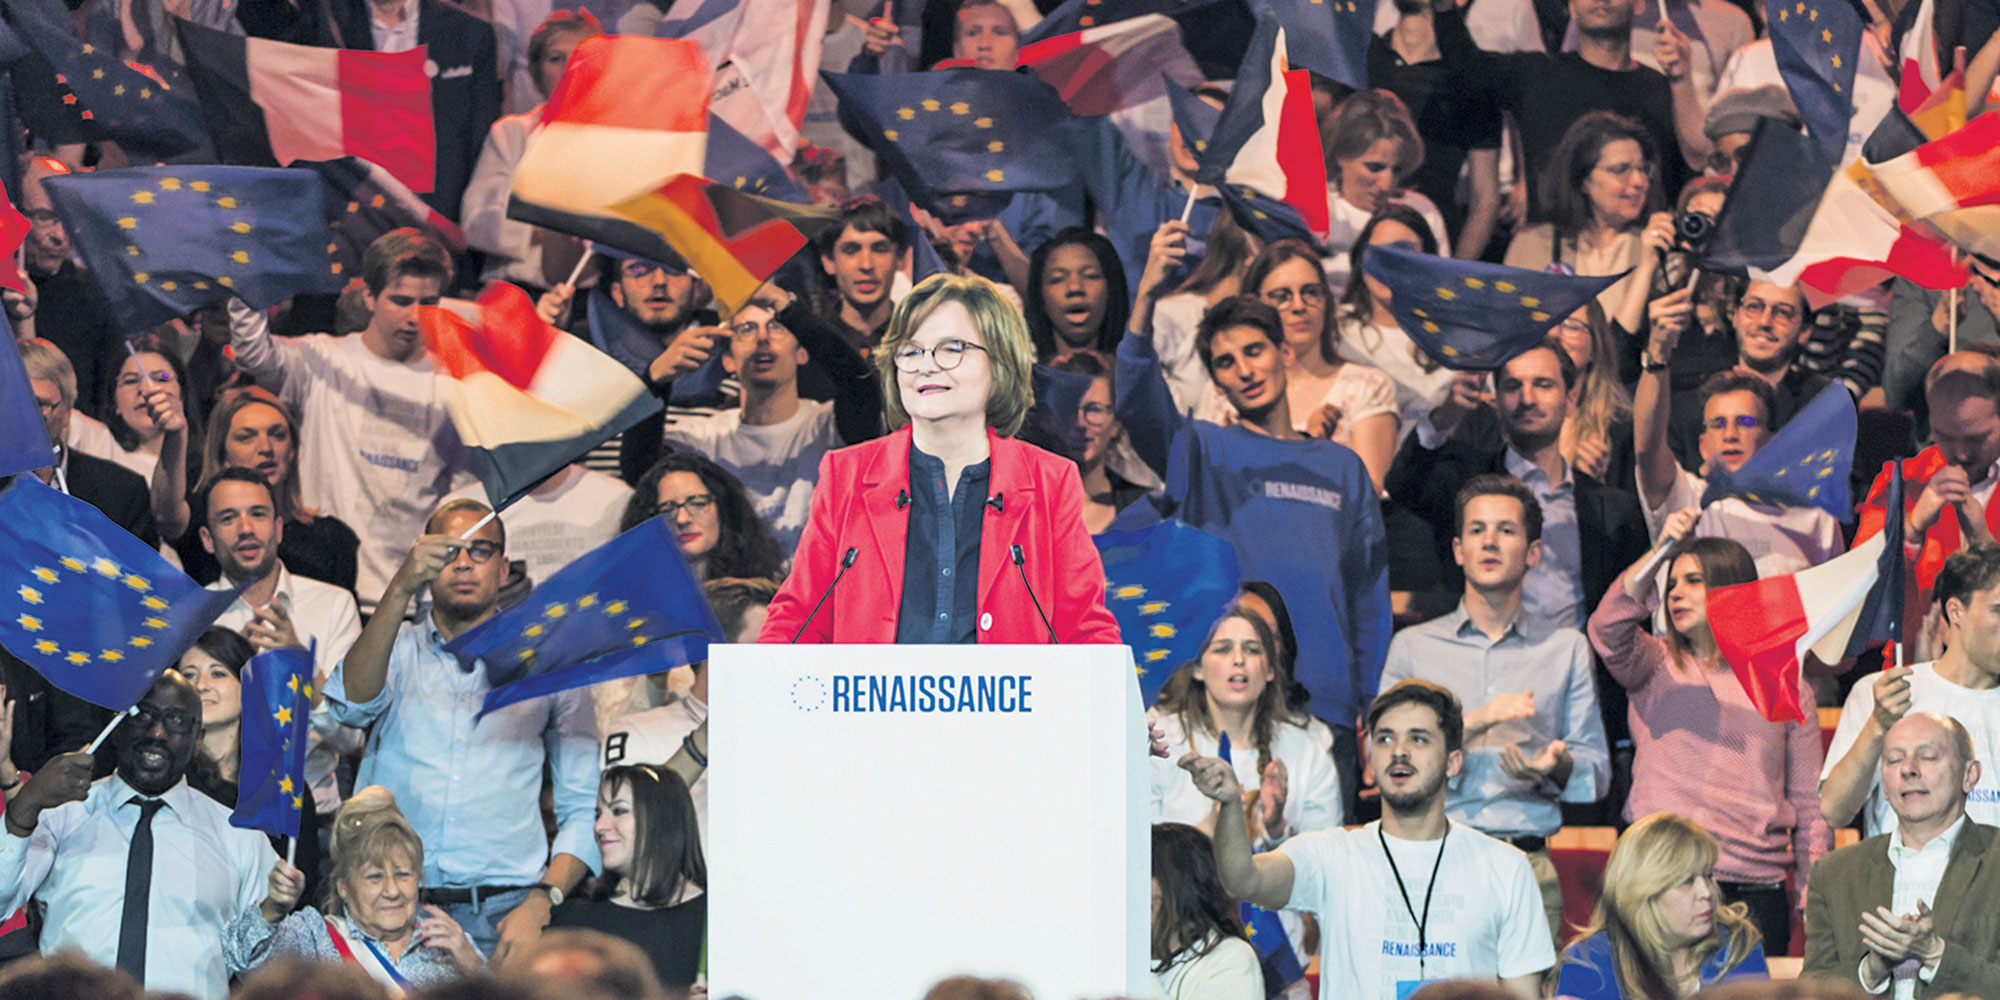 first meeting for Enmarche and Nathalie Loiseau